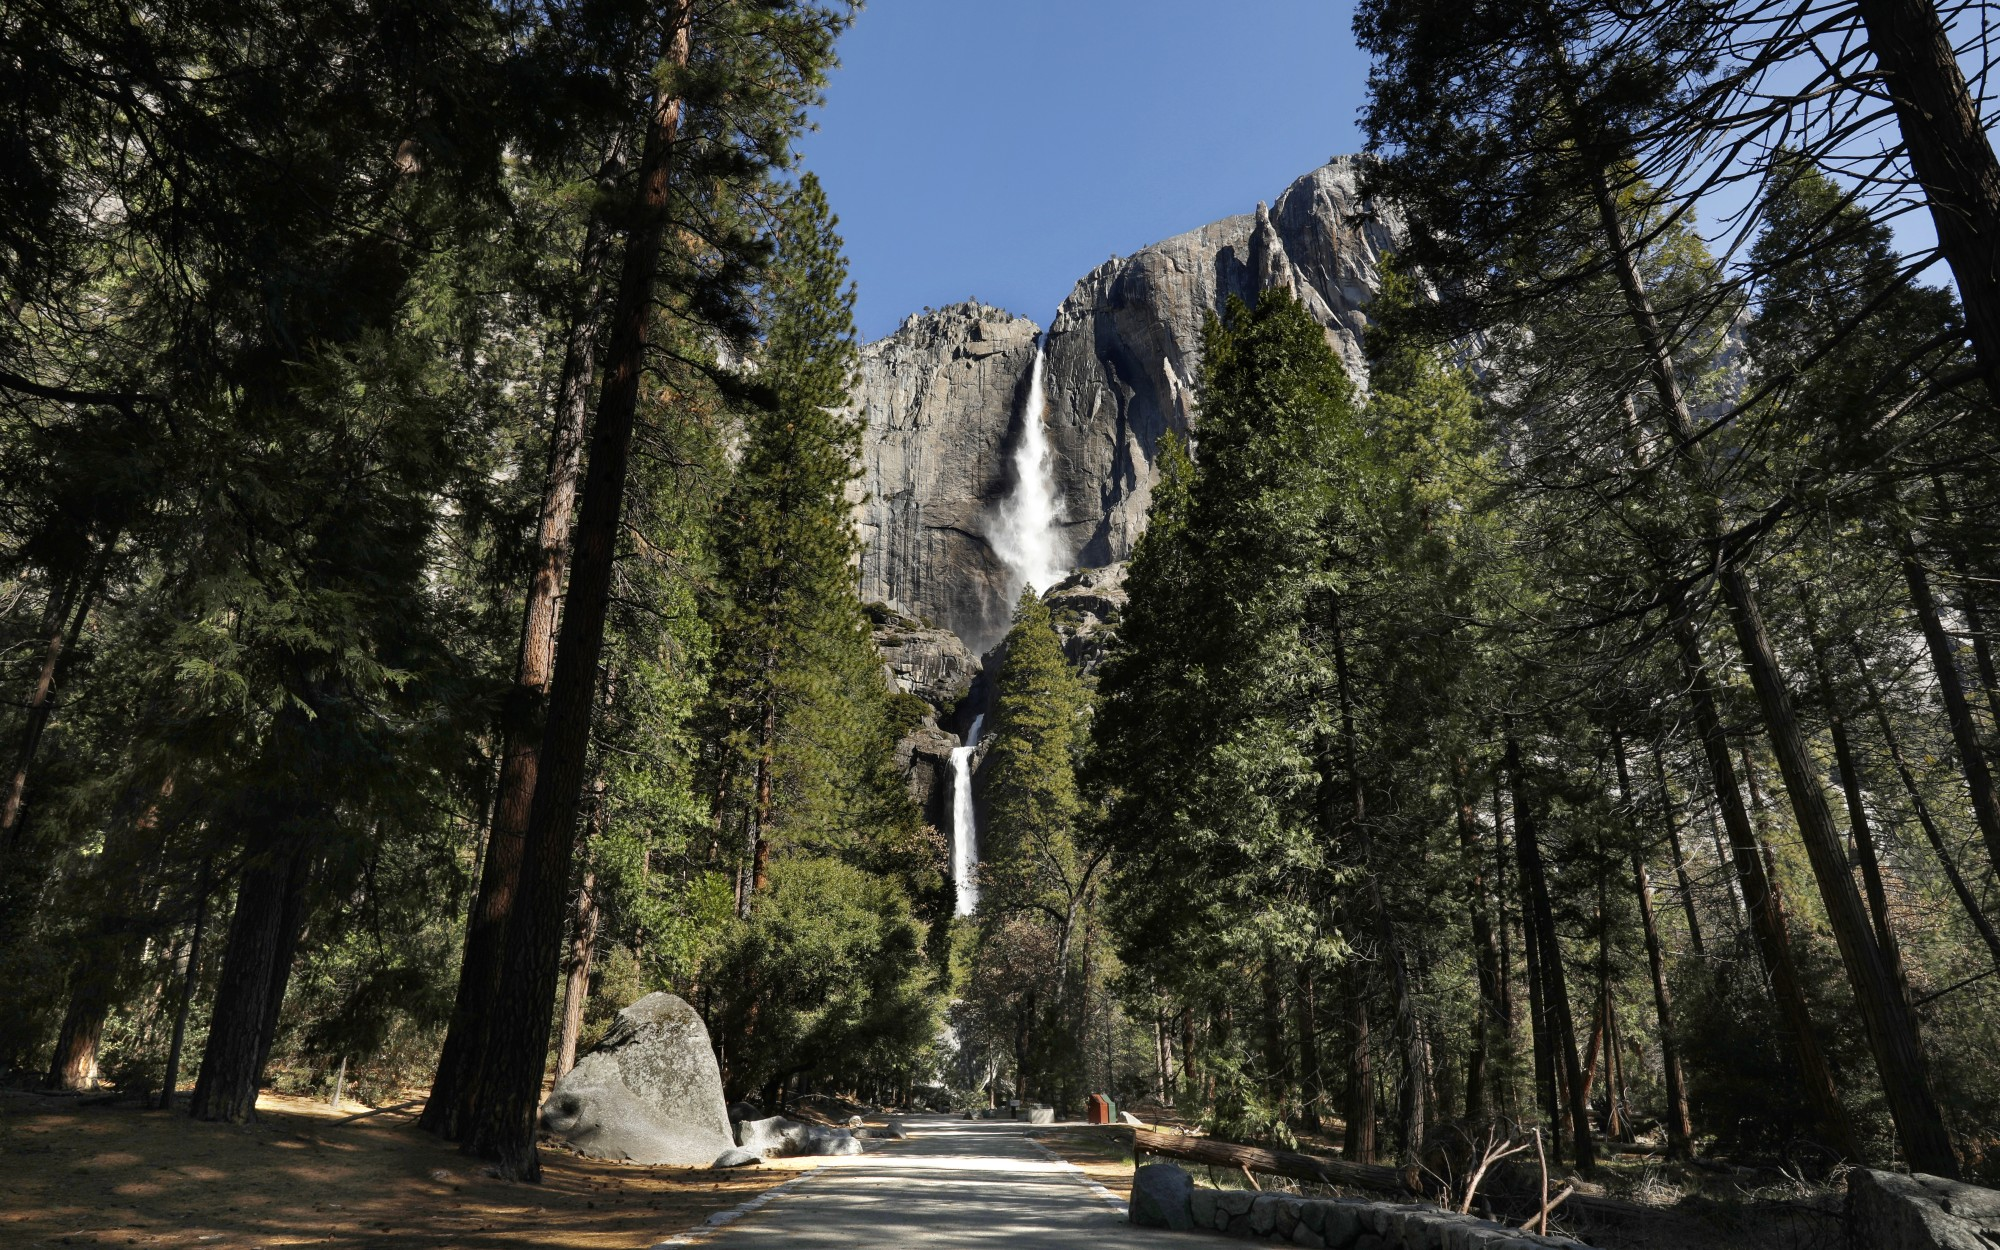 An empty trail leads to the Upper and Lower Yosemite Falls while the national park is closed due to coronavirus in April 2020. (Carolyn Cole / Los Angeles Times)